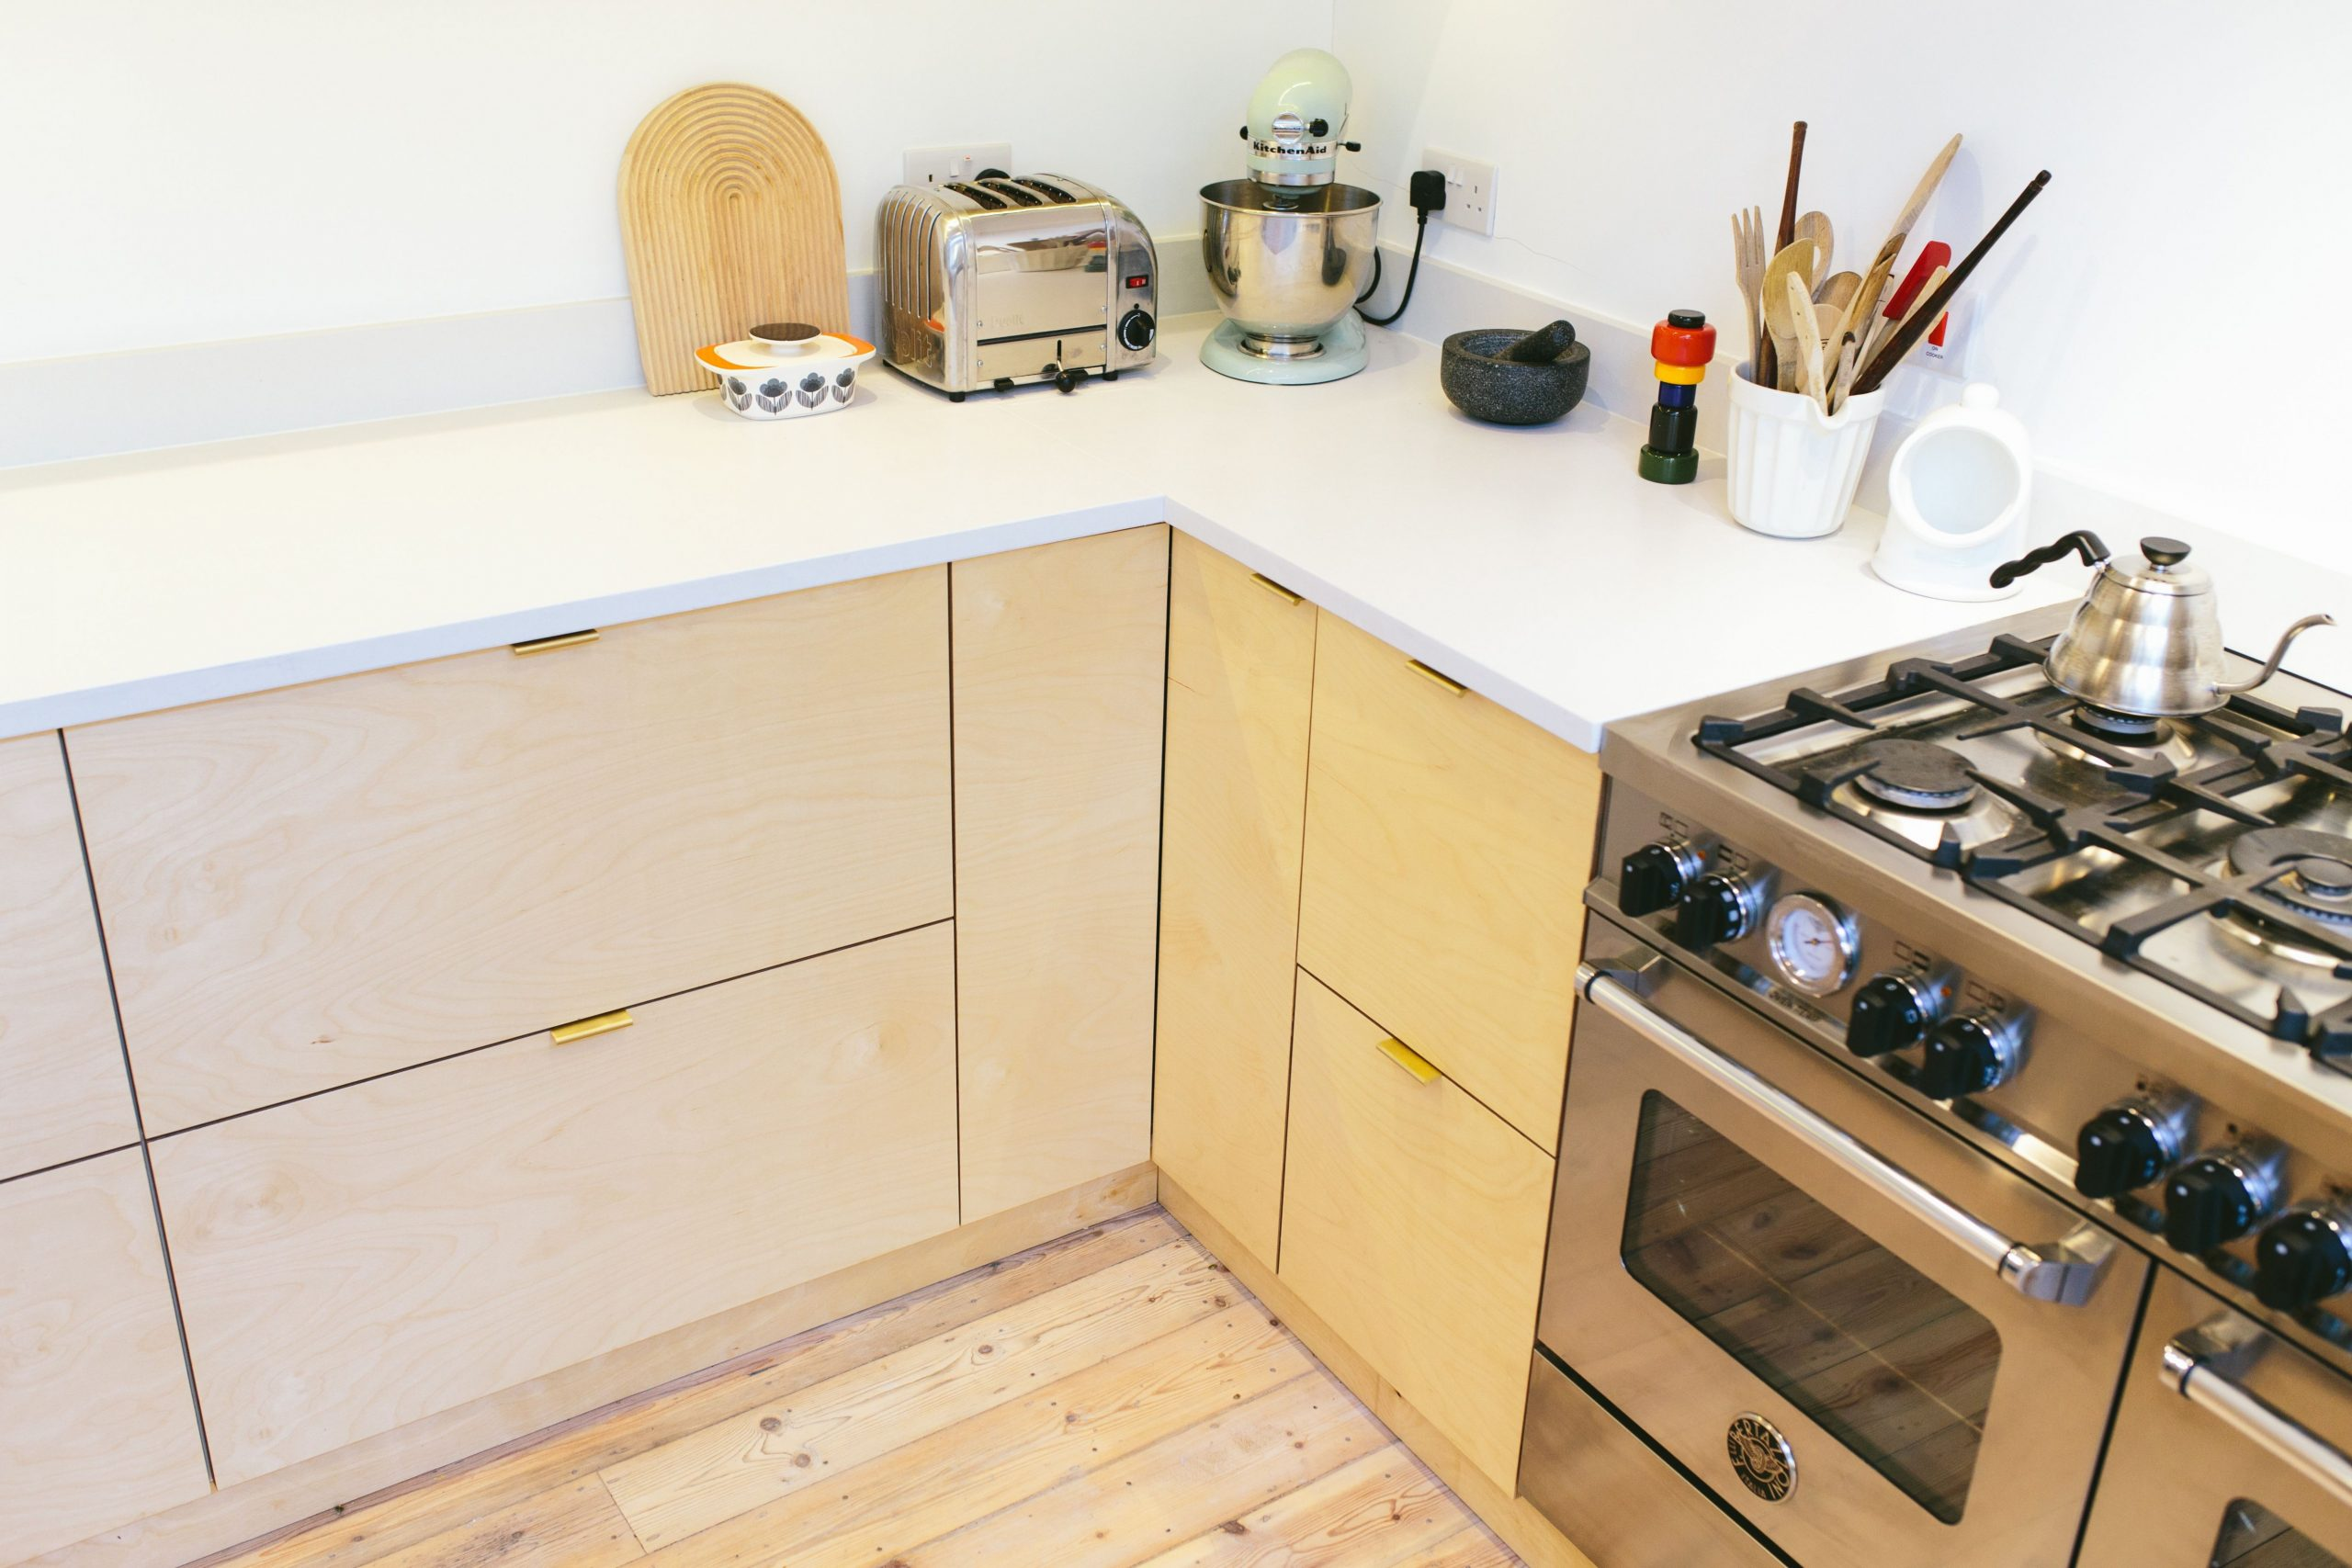 Birch faced plywood kitchen using IKEA base units and Plykea doors  - Birch Kitchen Cabinet Doors